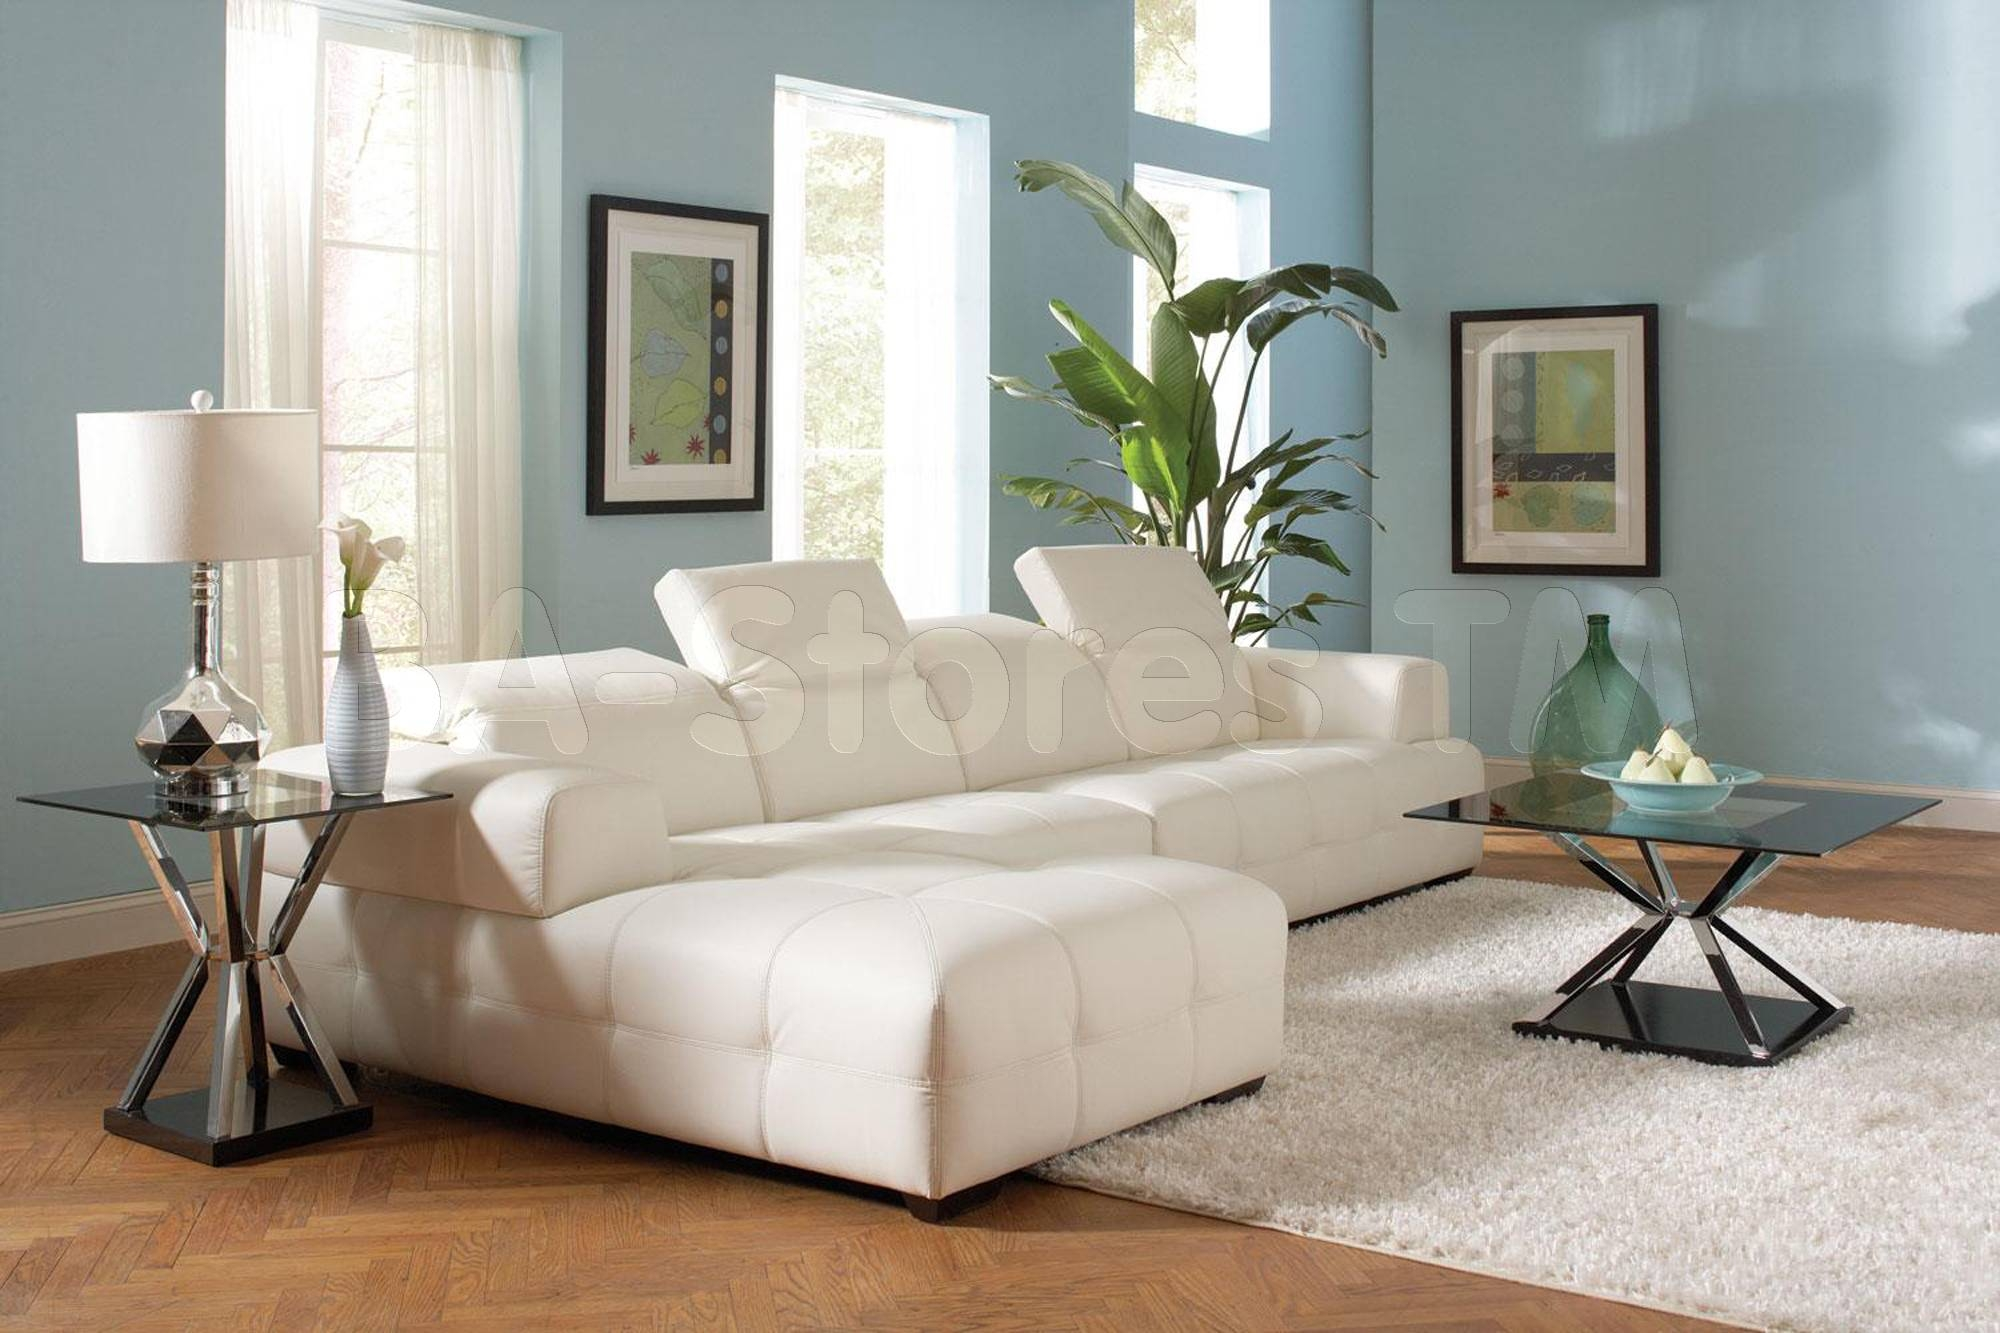 Darby White Sectional Sofa & Armless Chair | Sectional Sofas Coa intended for Armless Sectional Sofa (Image 12 of 30)